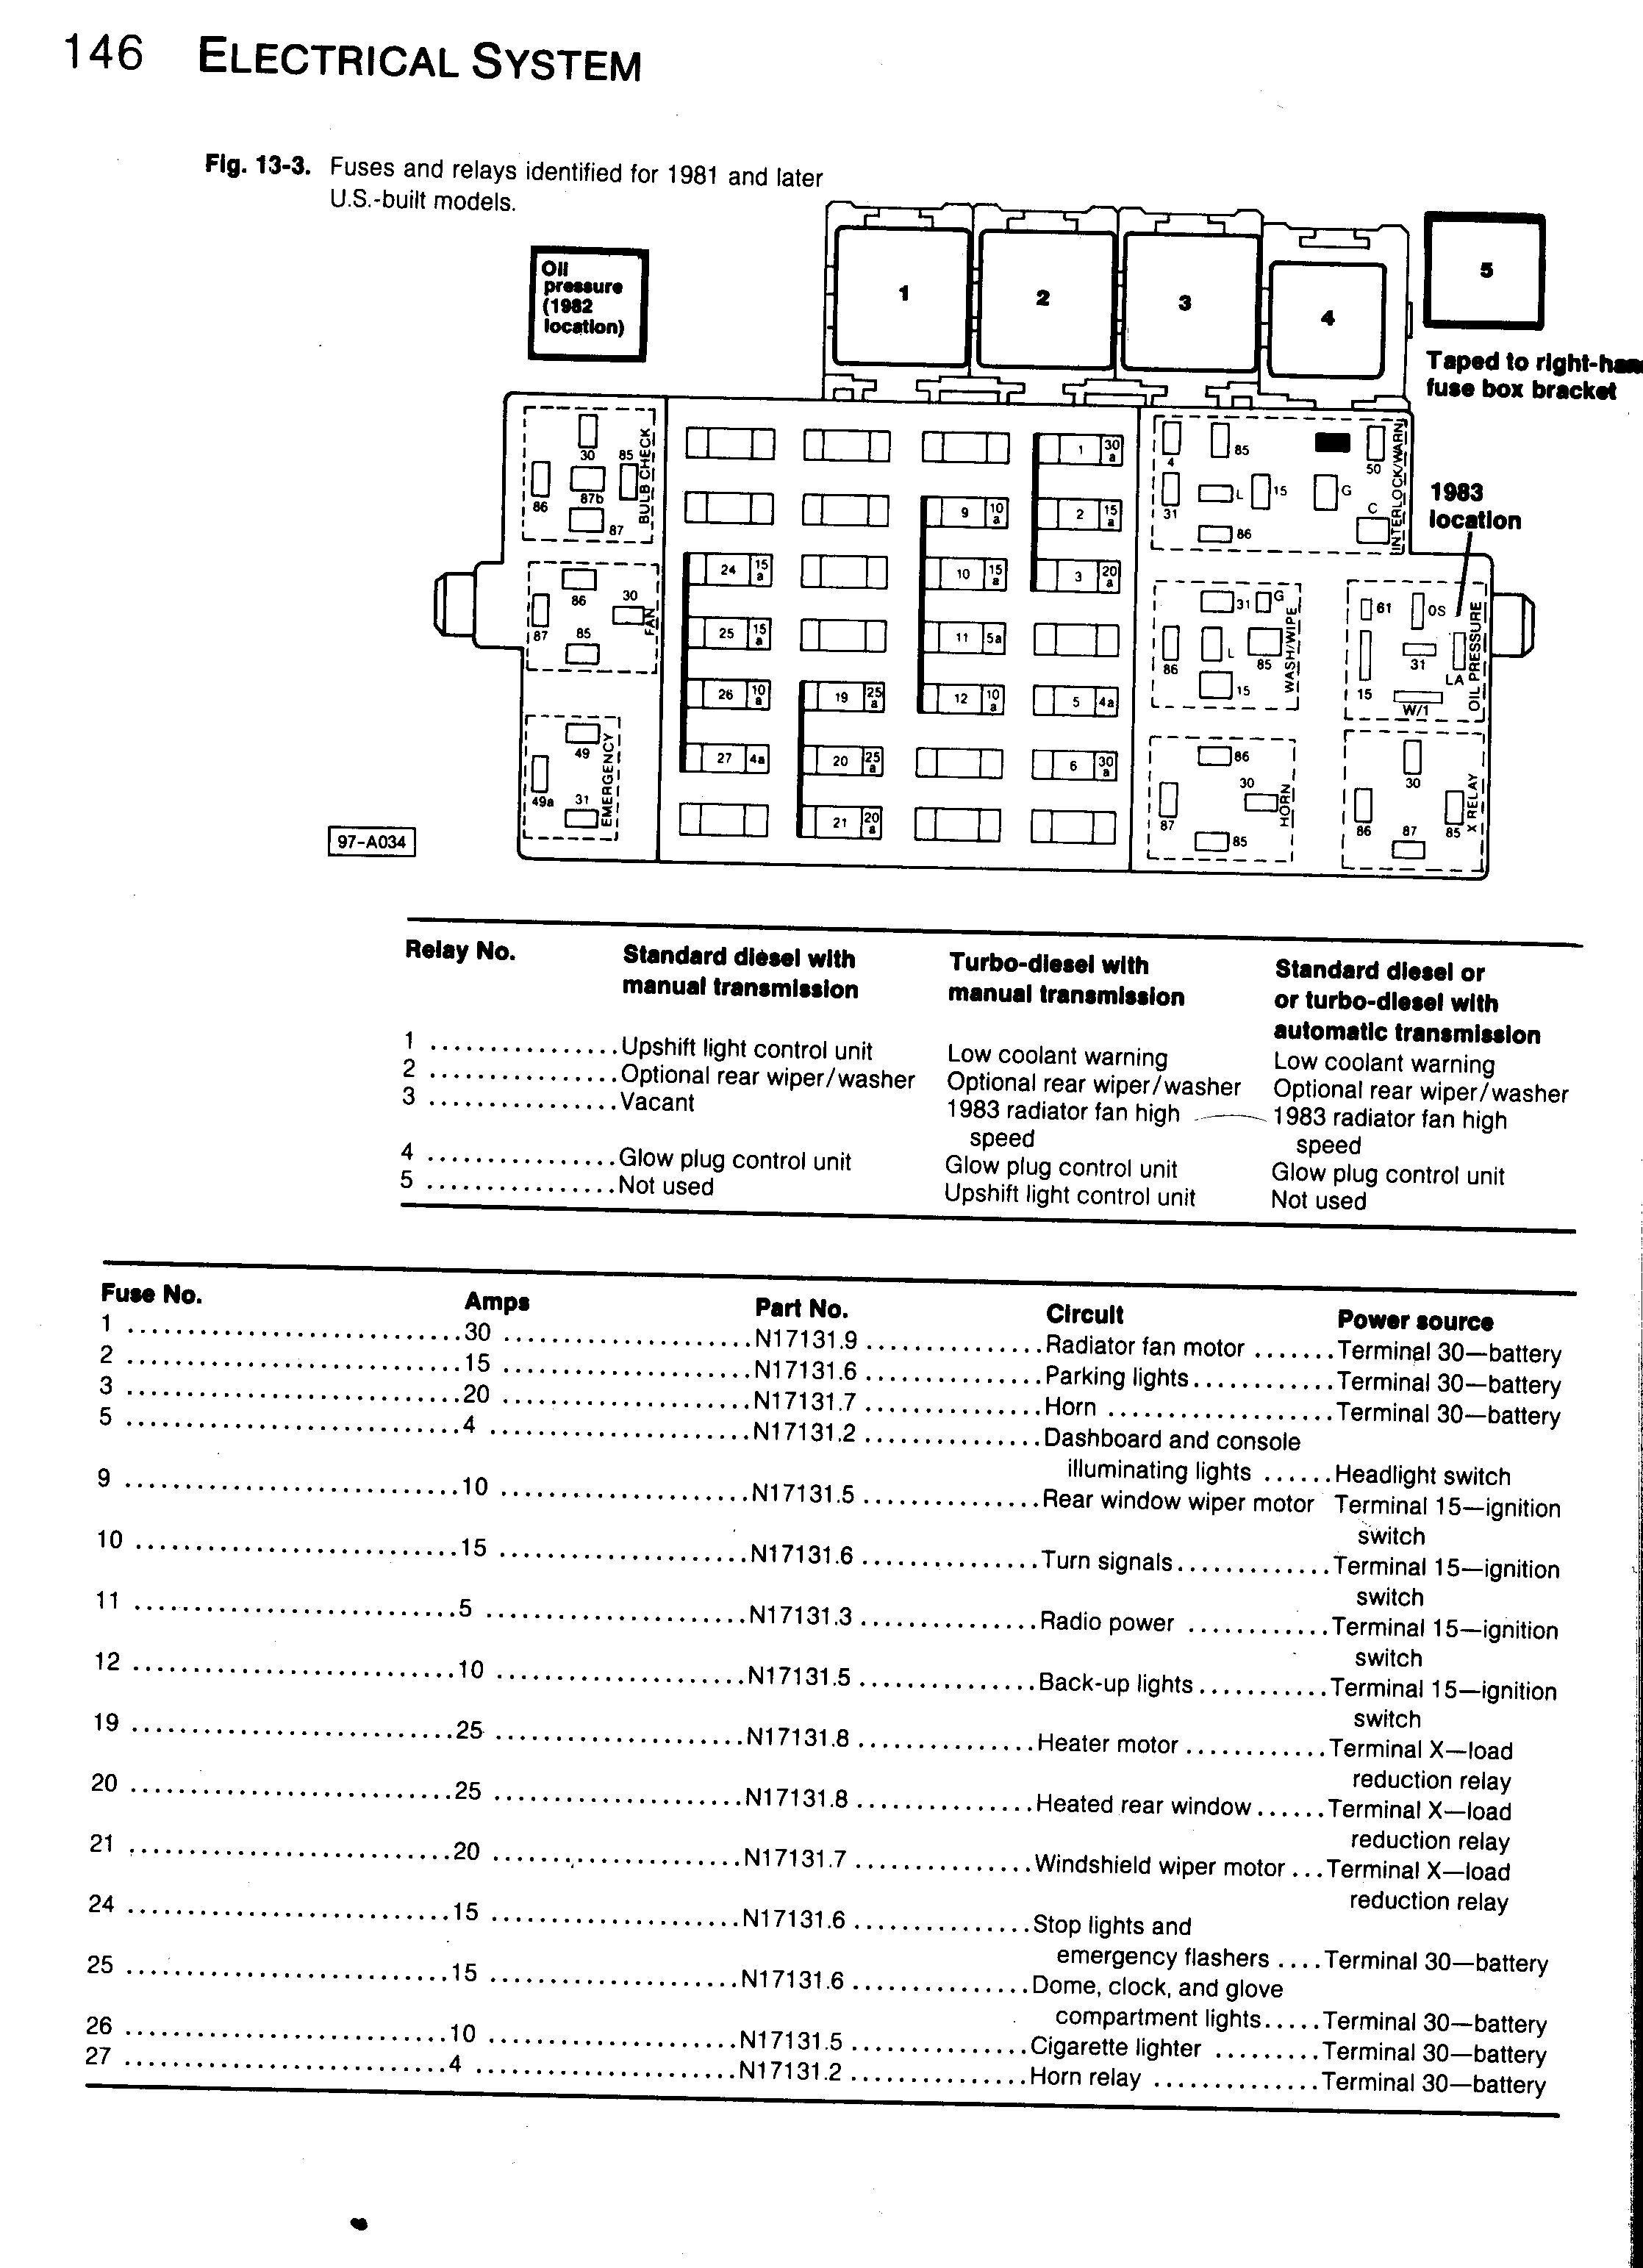 2005 Mercedes S430 Fuse Box Locations • Wiring Diagram For Free additionally Bmw E53 Ac Wiring Diagram   Wiring Library as well Bmw I Radio Wiring Diagram Trusted Il Volvo E Fuse Box   Auto further X Trail Radio Wiring Diagram   Wiring Library furthermore Bmw I Fuse Diagram Trusted Wiring Diagrams Box House   Auto moreover Bmw Xi Fuse Box Diagram Schematic Electronic E Wiring   Auto likewise X Trail Radio Wiring Diagram   Wiring Library as well BMW ELECTRICAL WIRING DIAGRAMS   Auto Electrical Wiring Diagram likewise 92 Bmw 325i Fuse Box Diagram   Wiring Library additionally Bmw Xi Fuse Box Diagram Schematic Electronic E Wiring   Auto as well Bmw I Radio Wiring Diagram Trusted Il Fuse Box Diagrams   Auto. on bmw i fuse box diagram trusted wiring engine x trailer il car stereo diagrams layout electrical systems location freddryer co wire center 98 740i